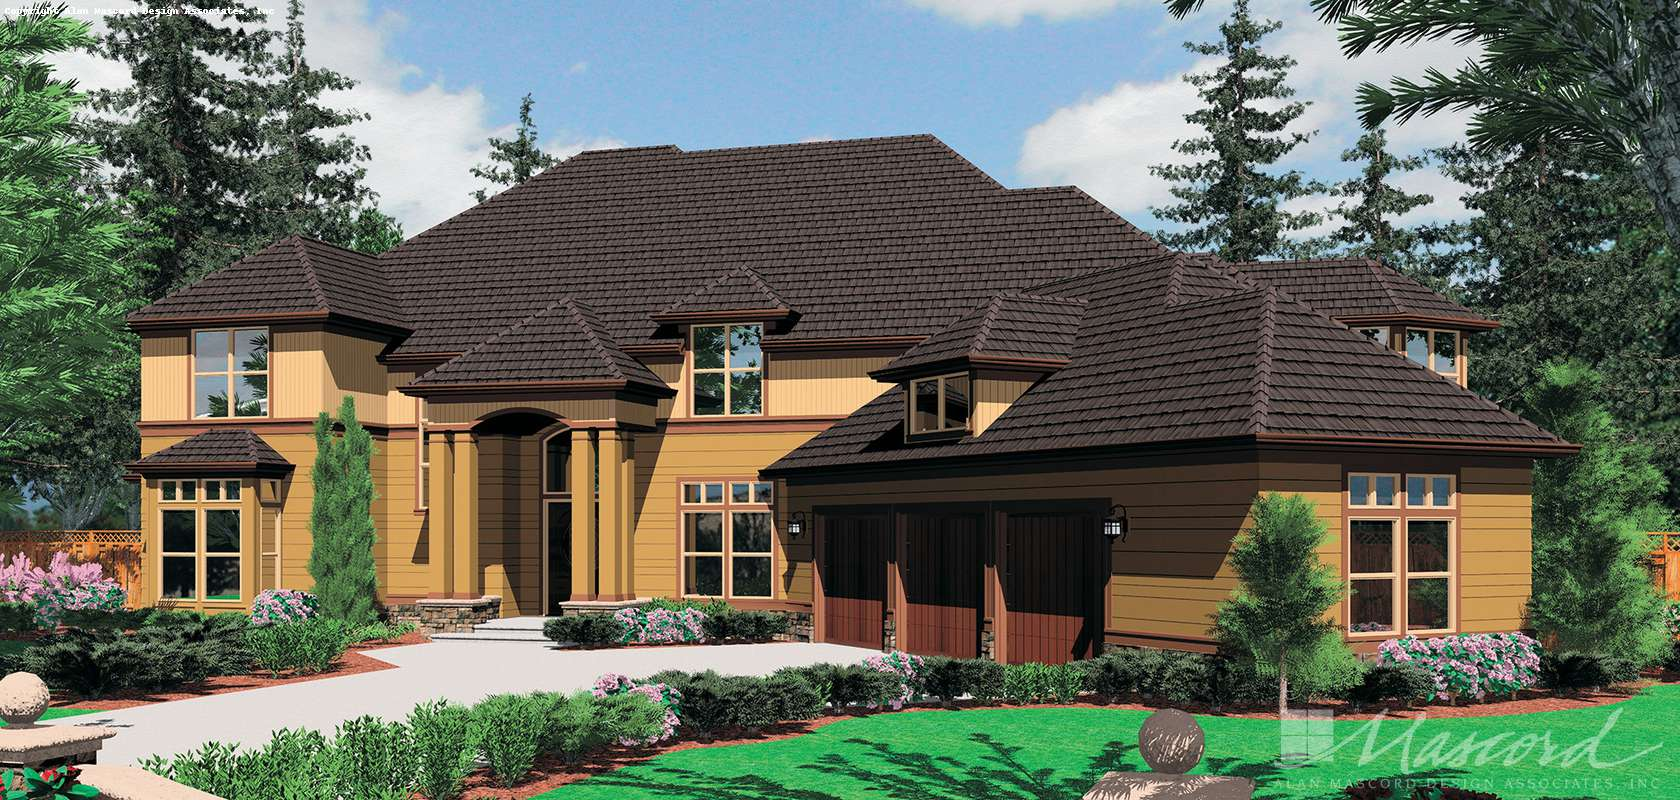 Mascord House Plan 2430: The Everton